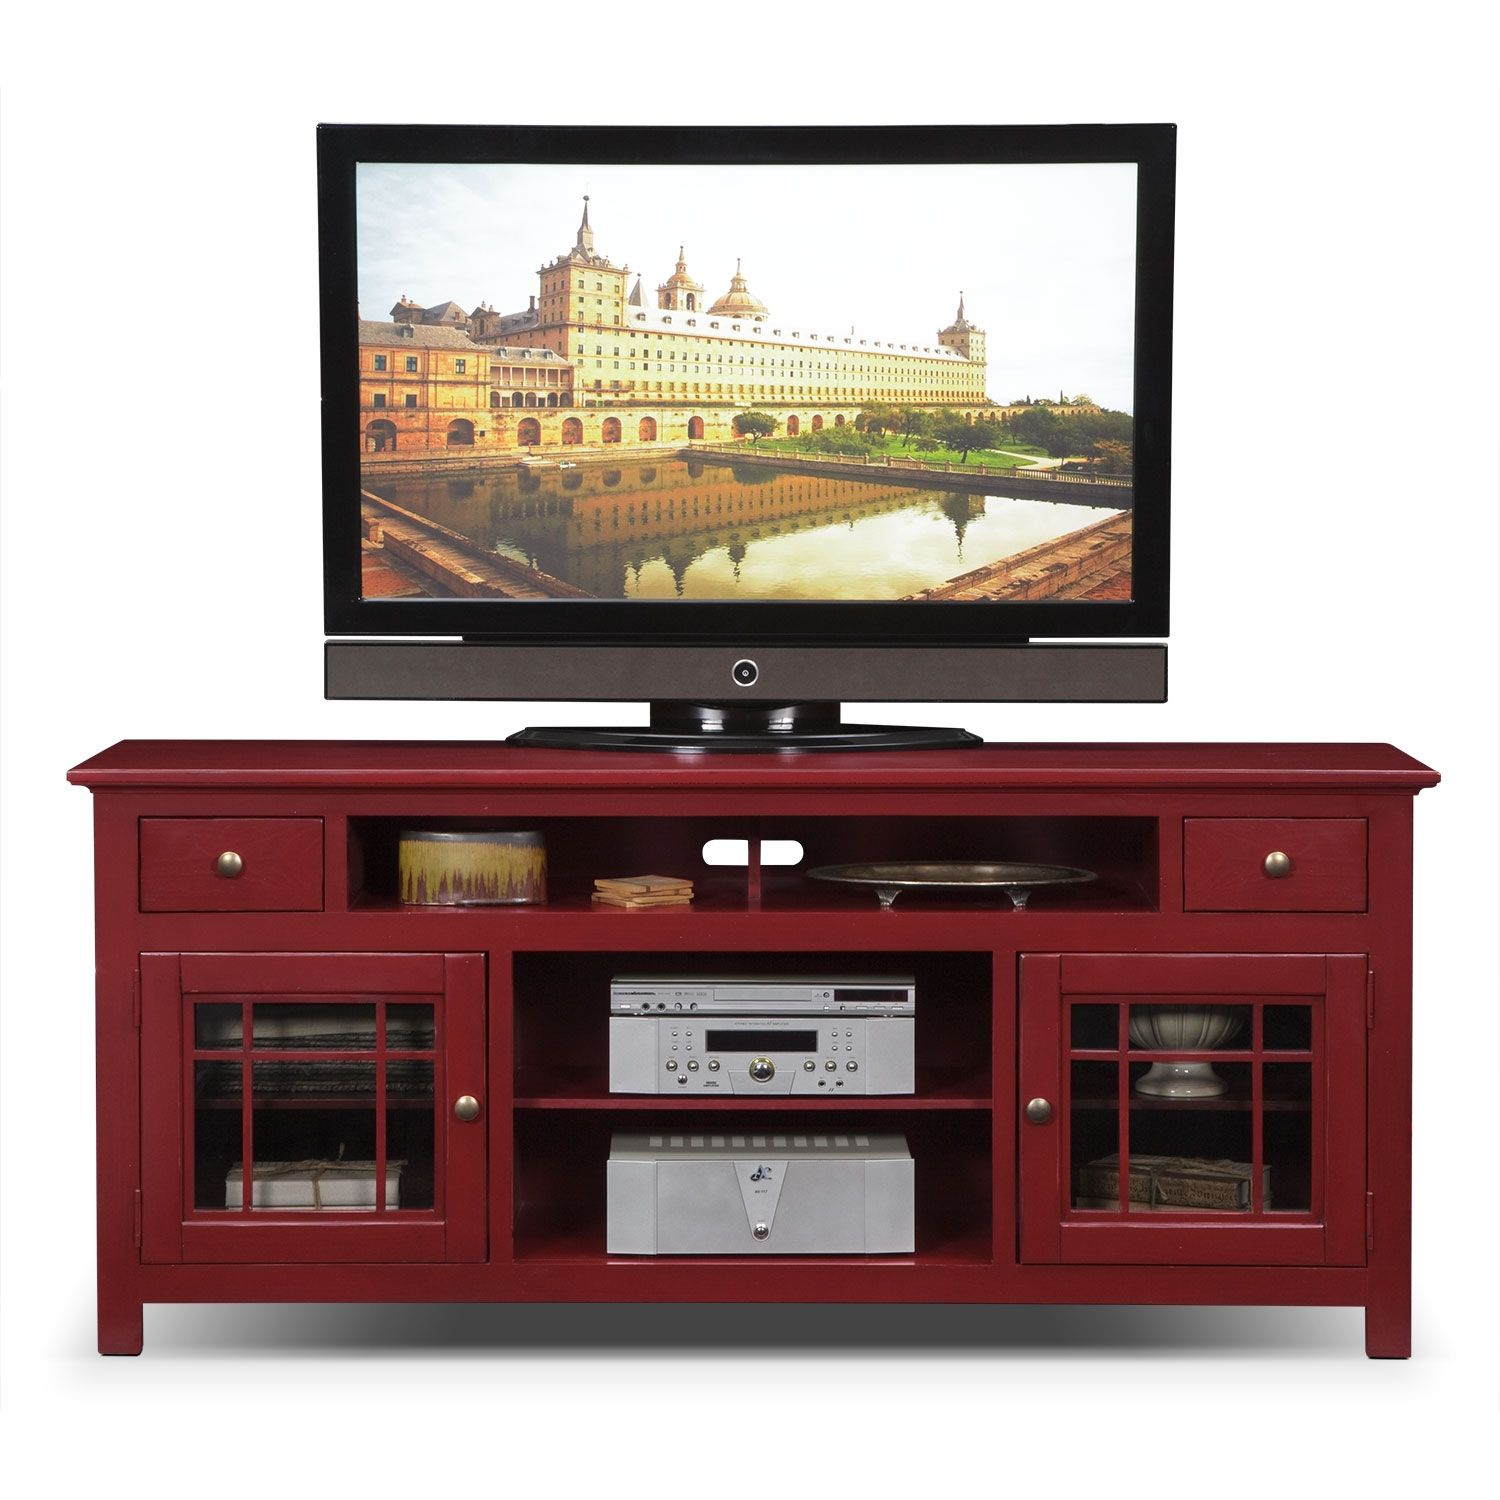 Merrick Tv Stand Fireplace Tv Stand Red Tv Stand Value City